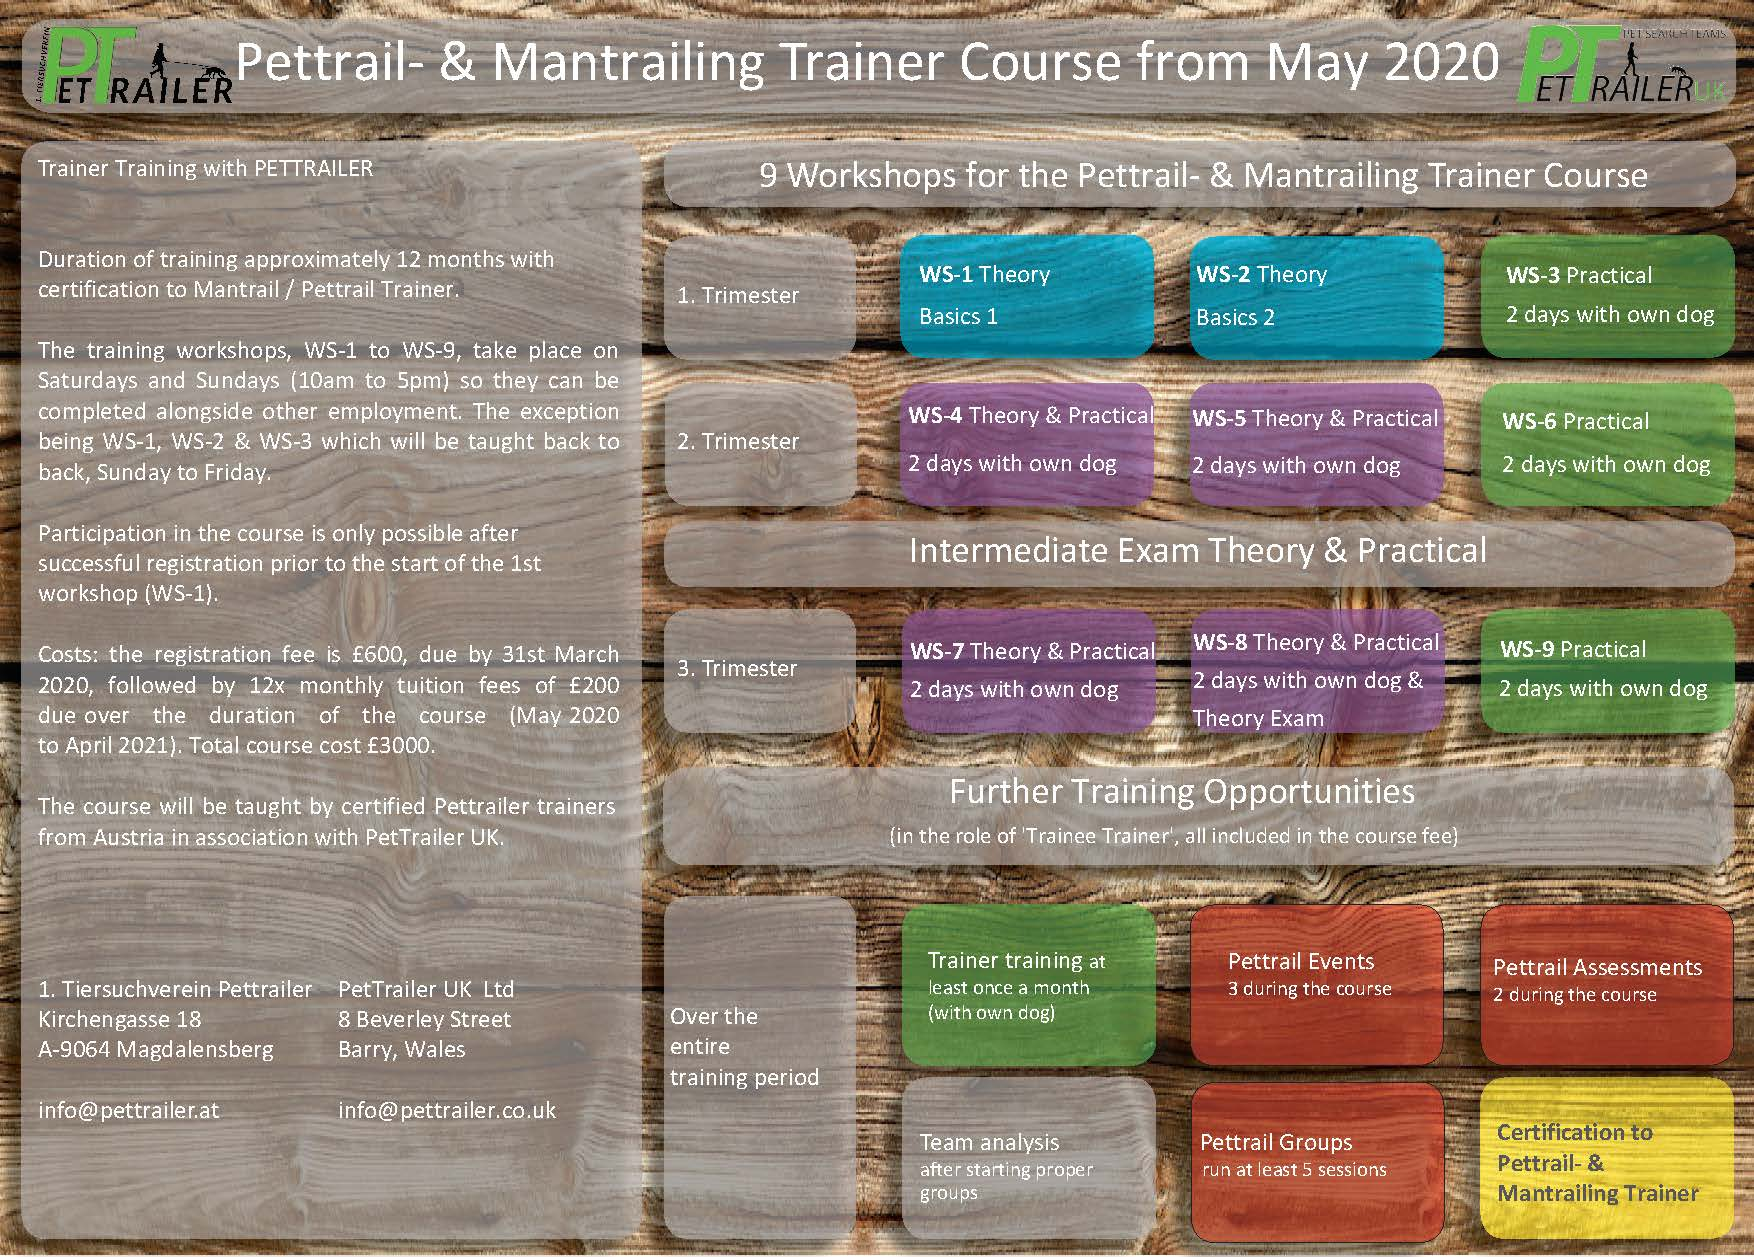 Pettrailer UK Mantrailing Trainer Course 2020